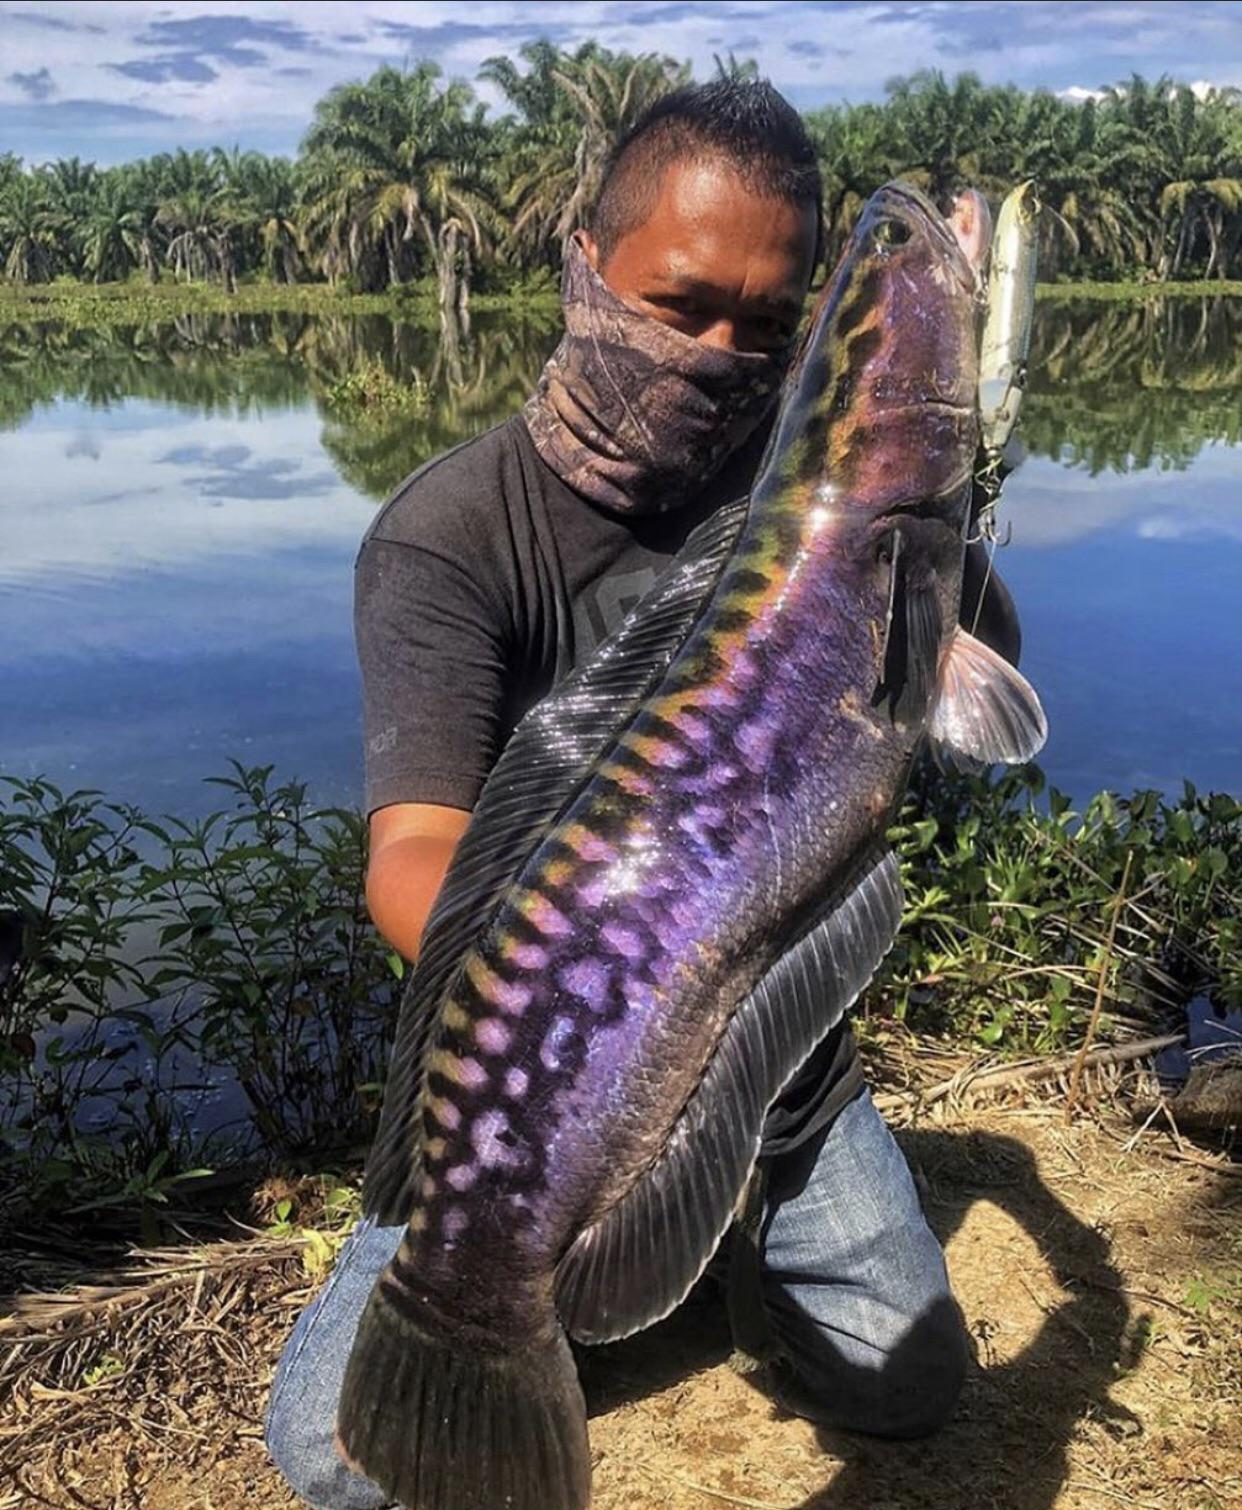 The colors on this snakehead fish